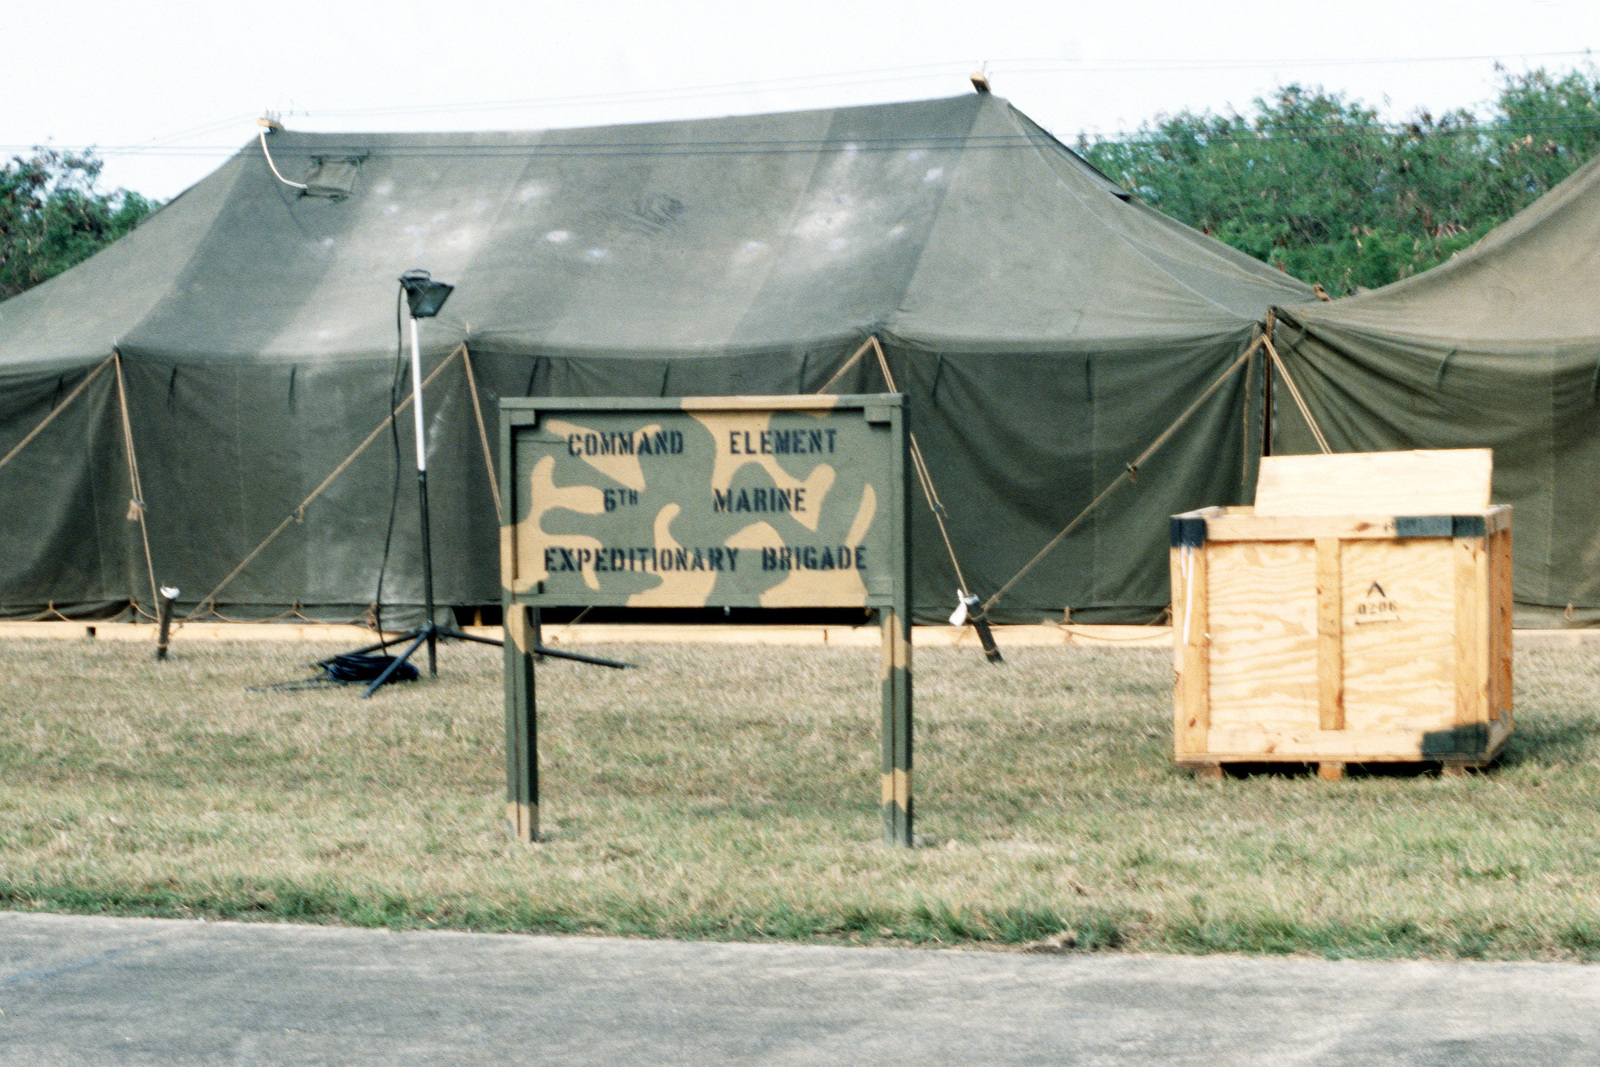 A view of some of the tents used by the command element of